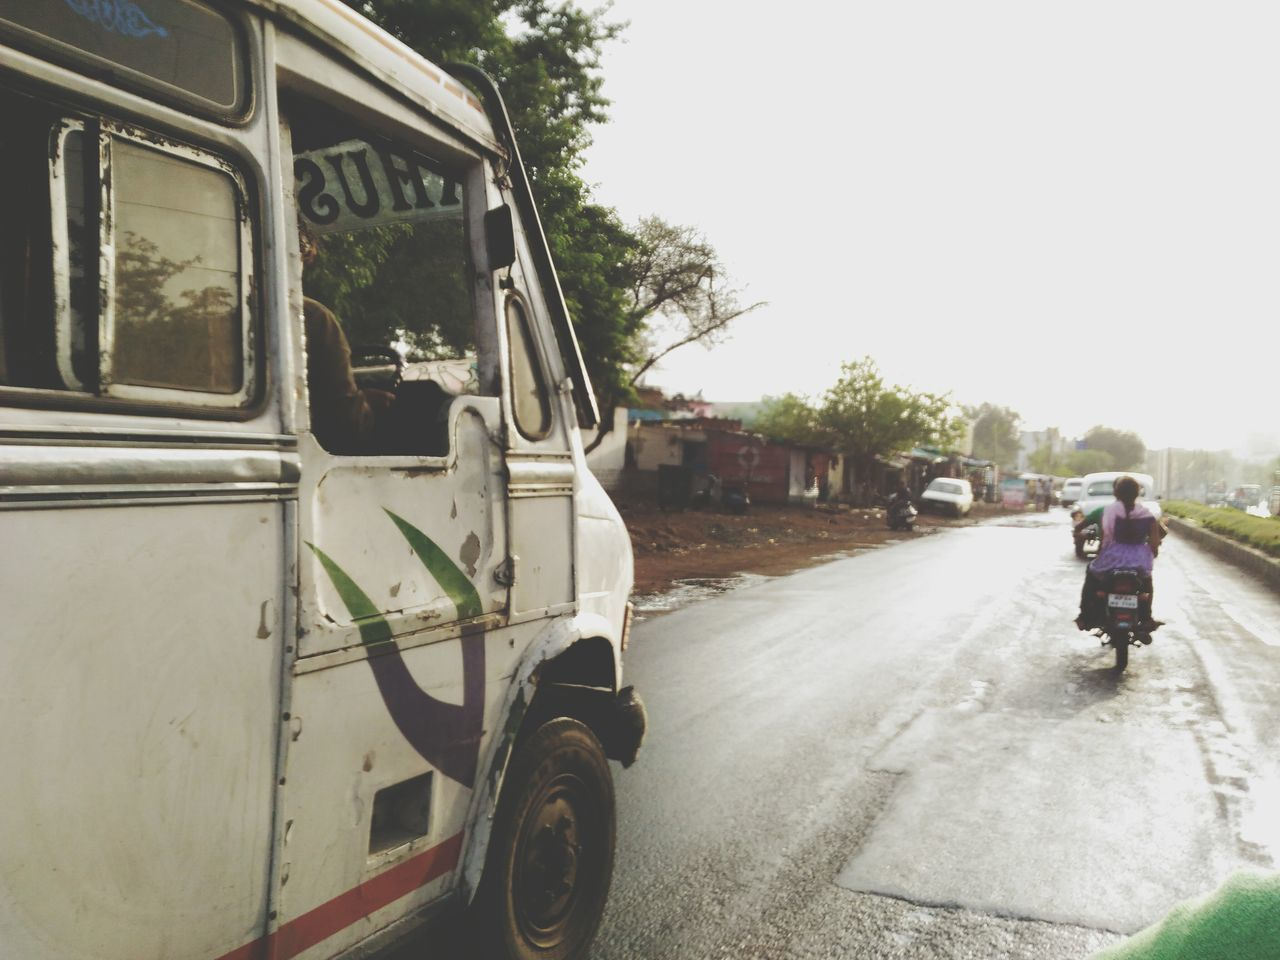 Bus The Street Photographer - 2016 EyeEm Awards Bus Side View The Great Outdoors - 2016 EyeEm Awards The Great Outdoors With Adobe The Photojournalist - 2016 EyeEm Awards Finding New Frontiers Traveling Home For The Holidays